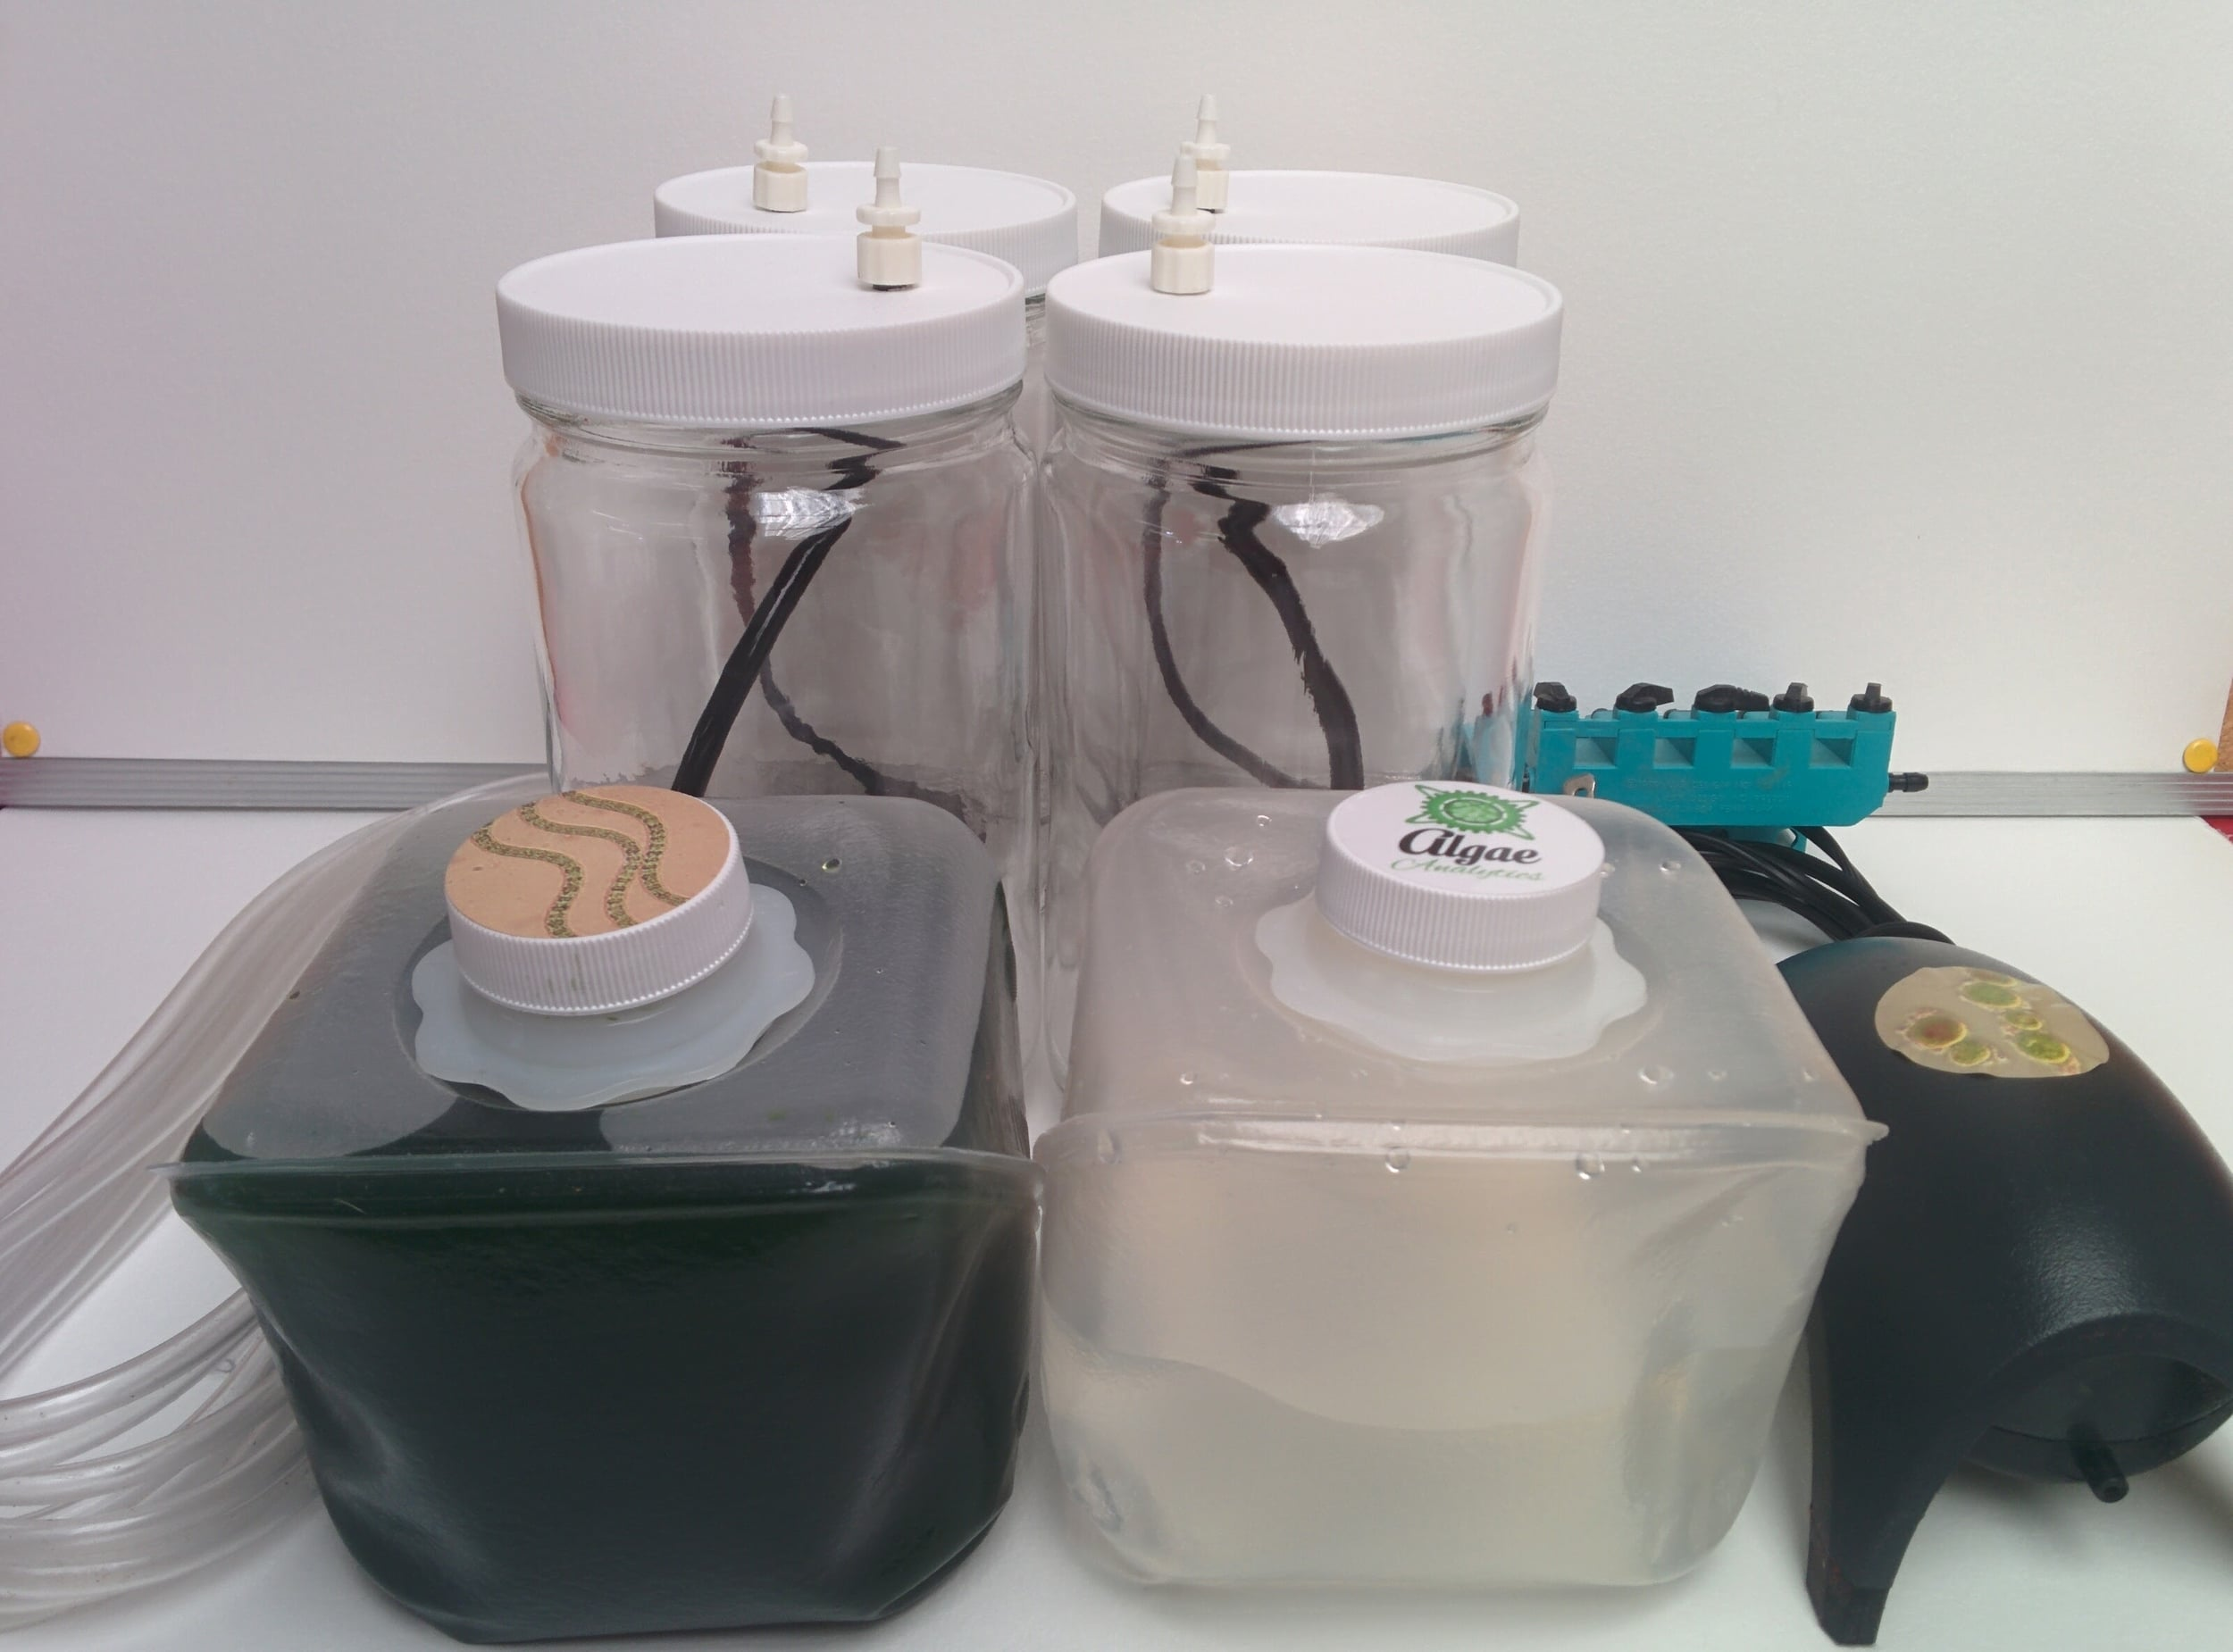 Algae growing kit including 4 bioreactors, algae culture and medium.